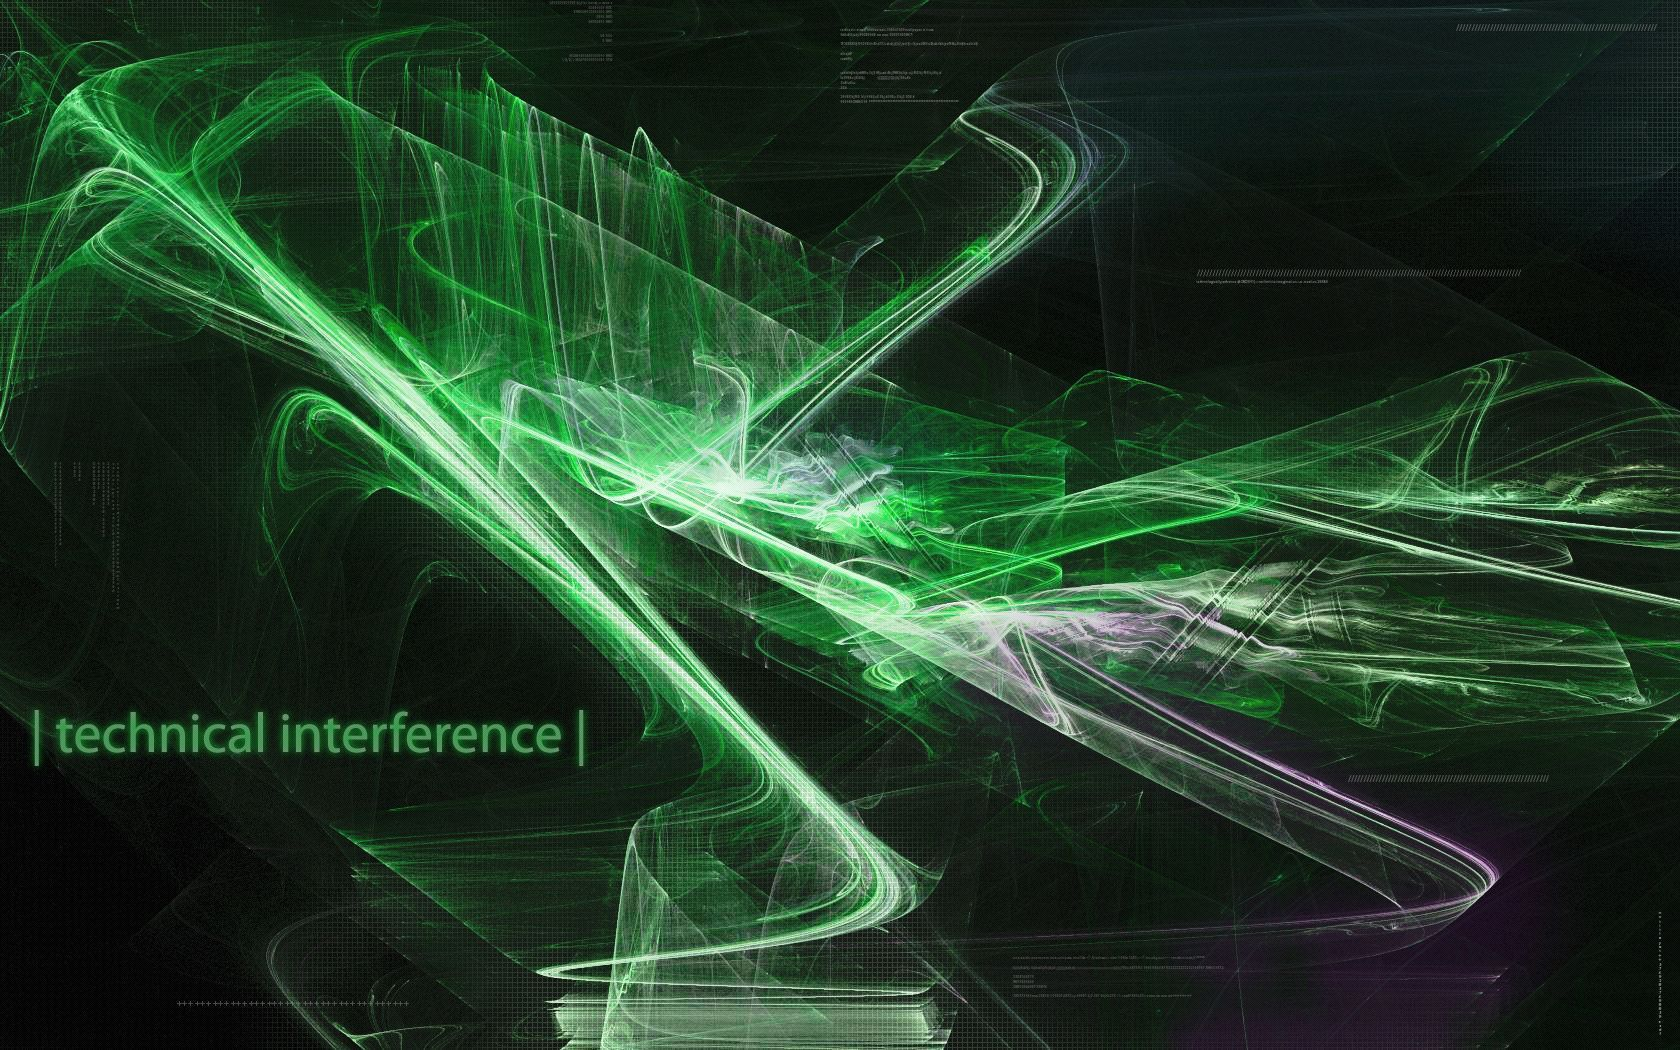 Desktop wallpaper images technical interference hd wallpaper and